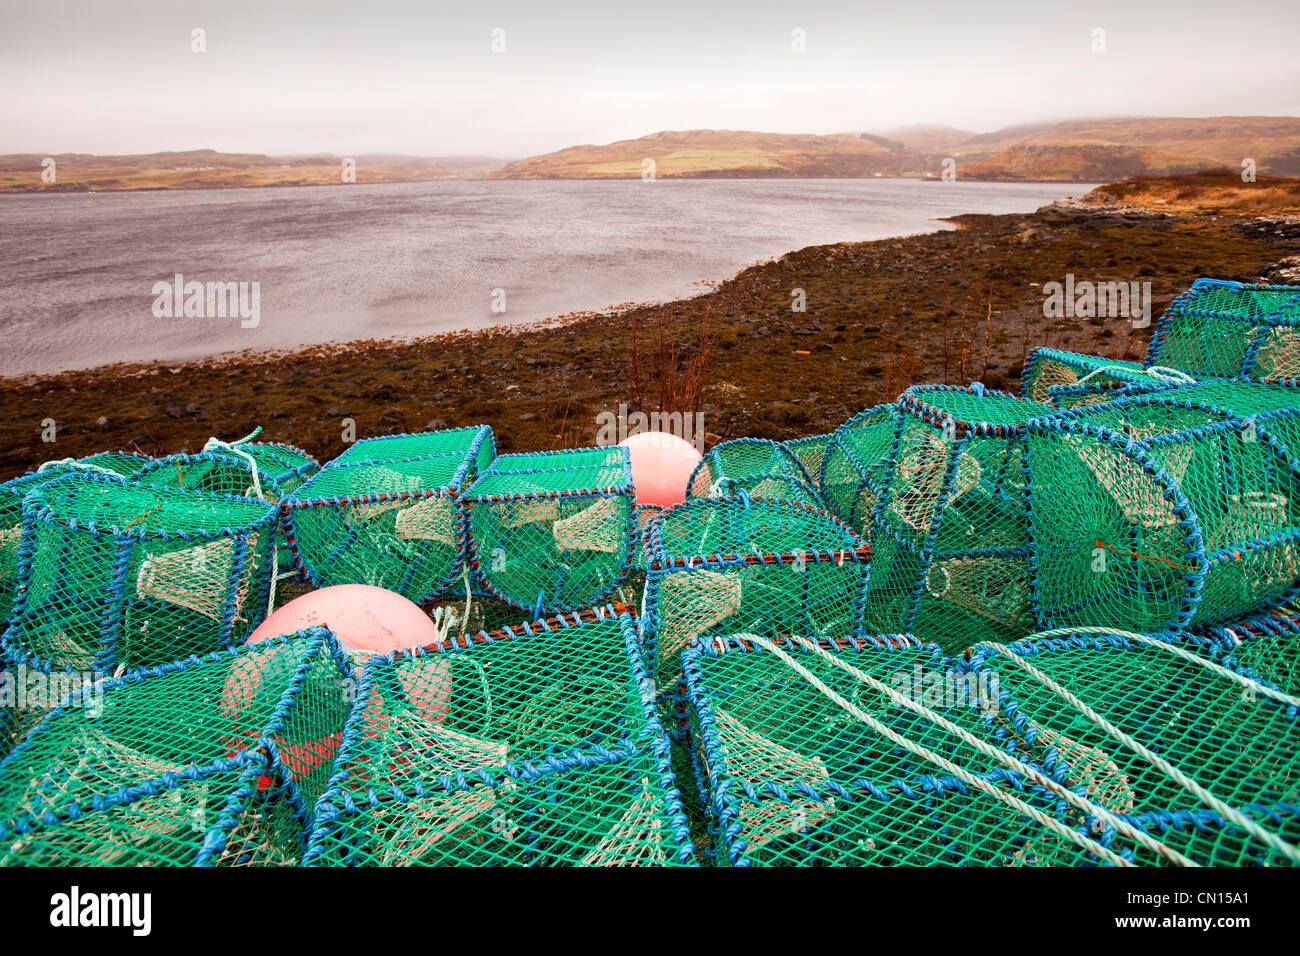 Lobster pots or creels on the harbour at Portnalong, Isle of skye, Scotland, UK. Stock Photo